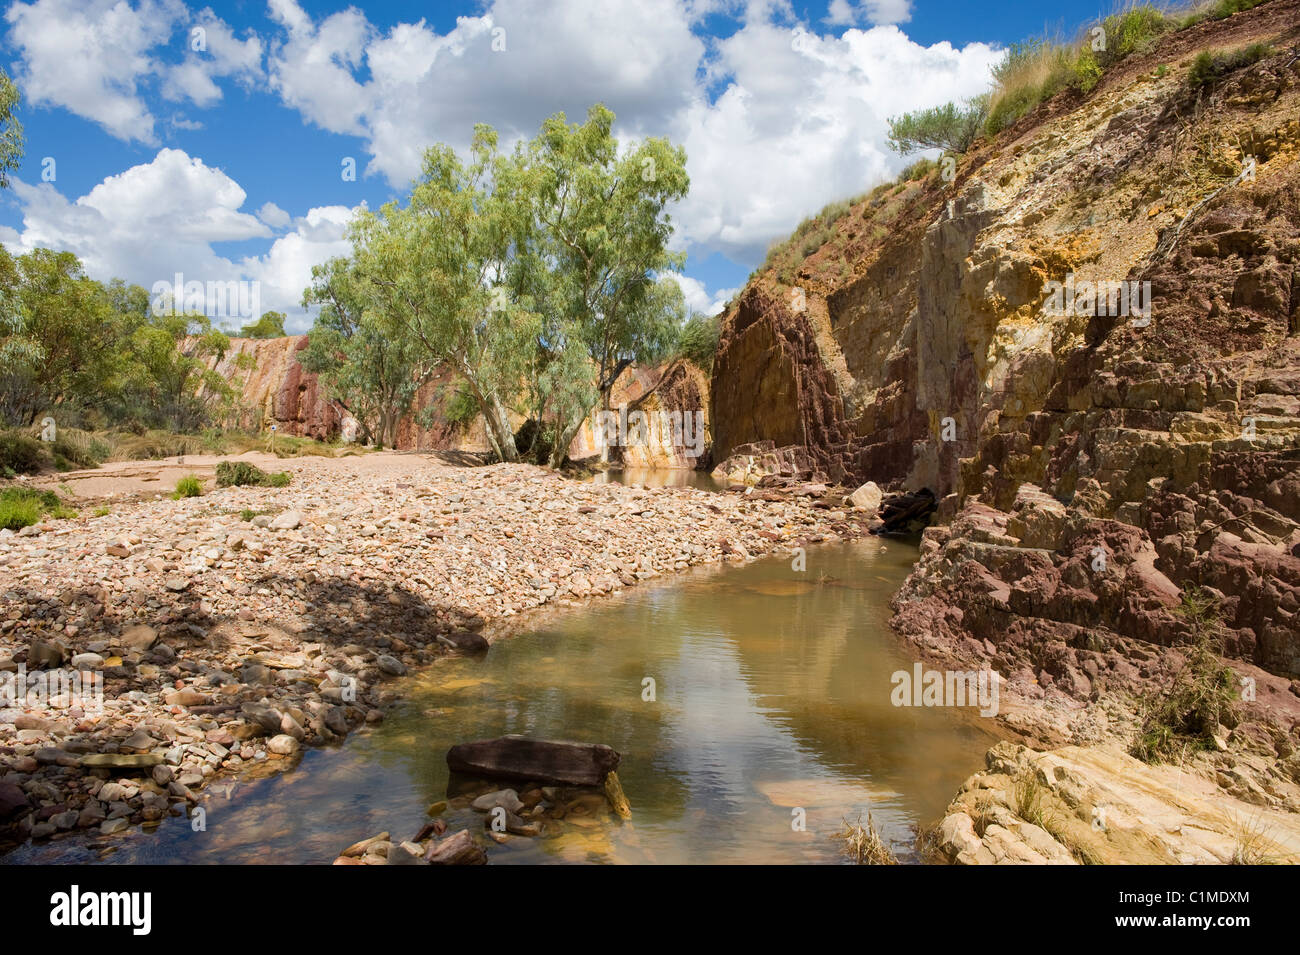 The ochre pits in the Western MacDonnell National Park, Australia - Stock Image